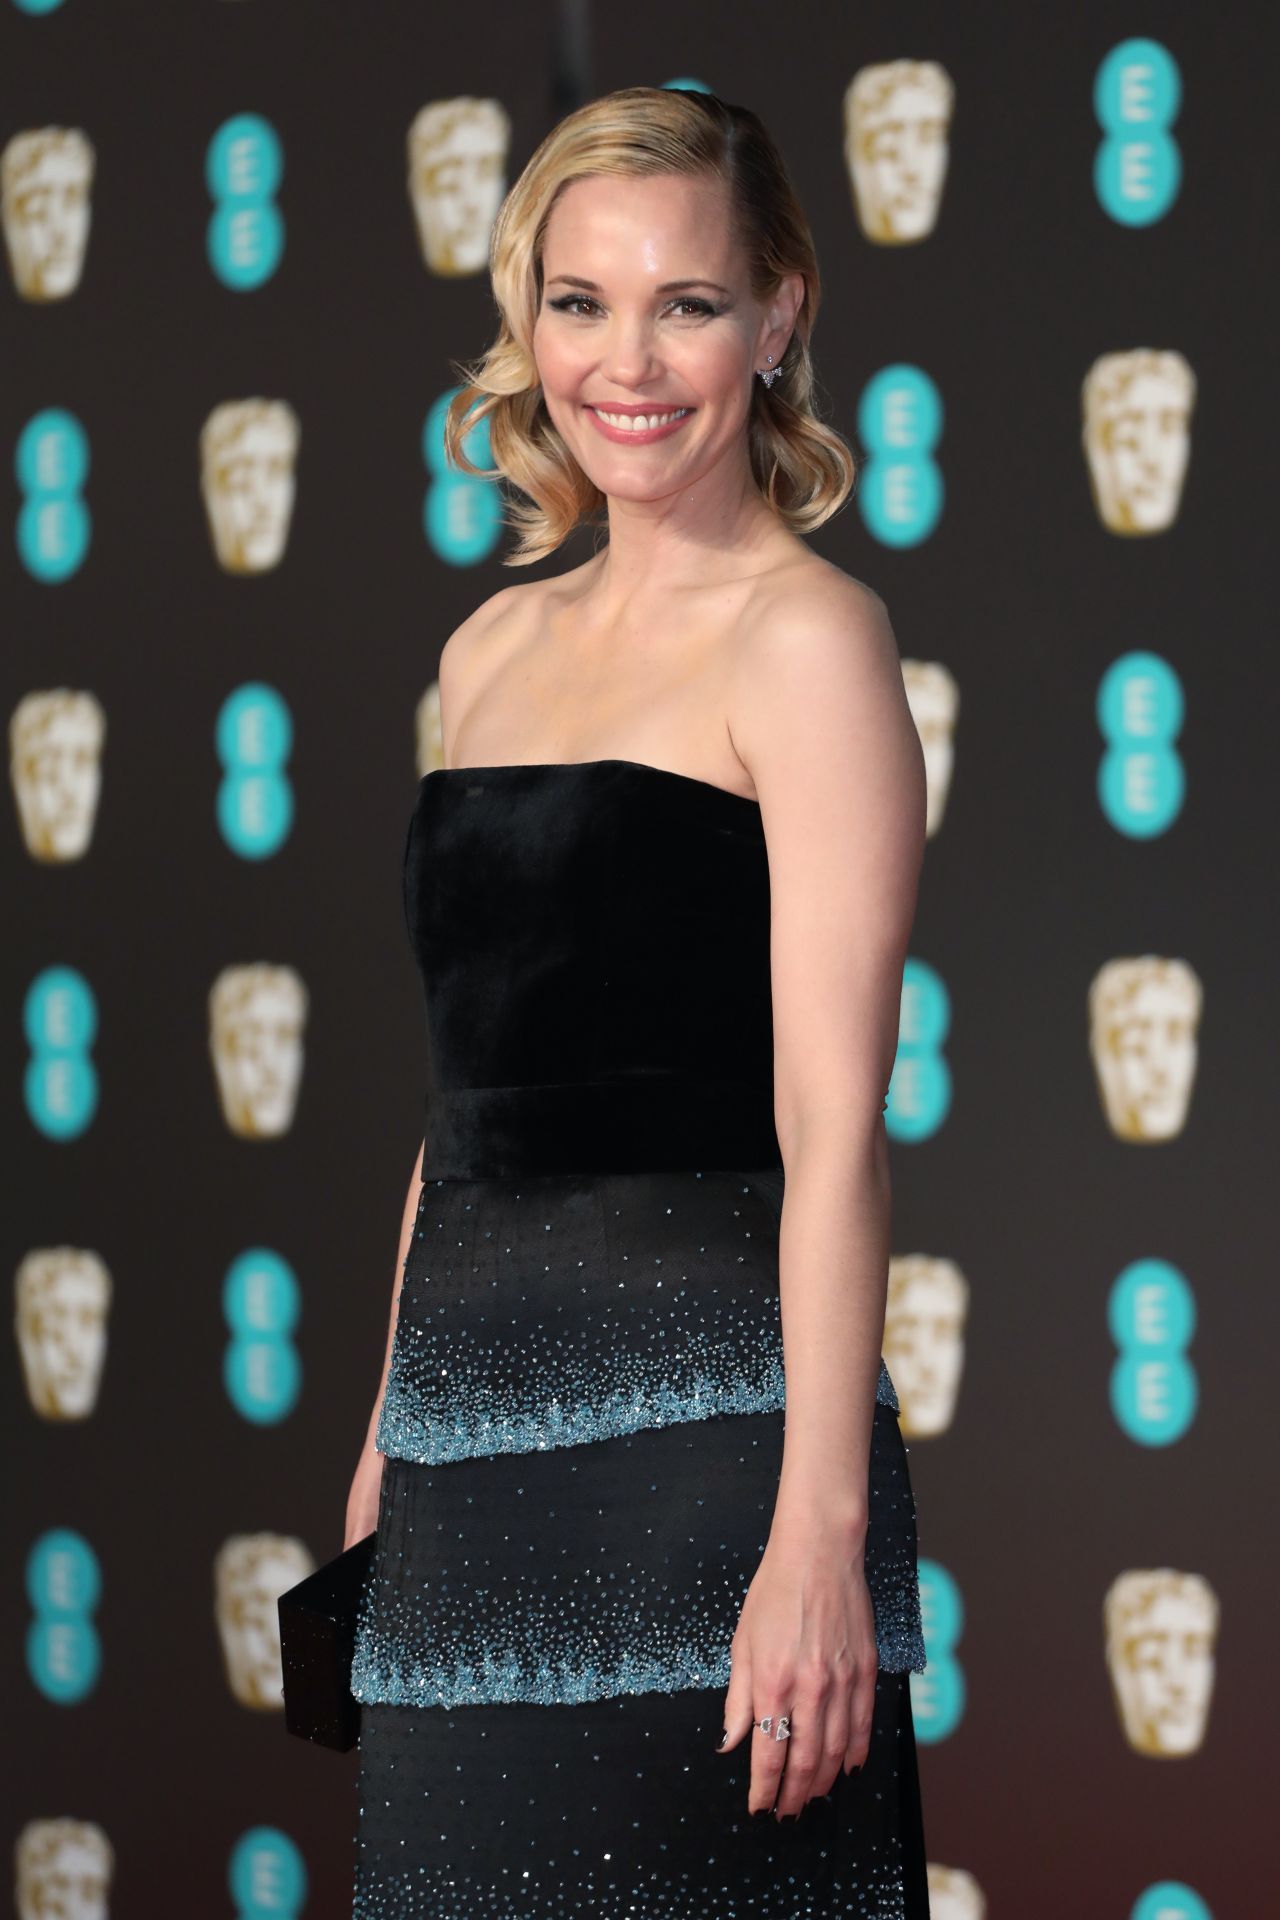 Leslie Bibb 2018 British Academy Film Awards